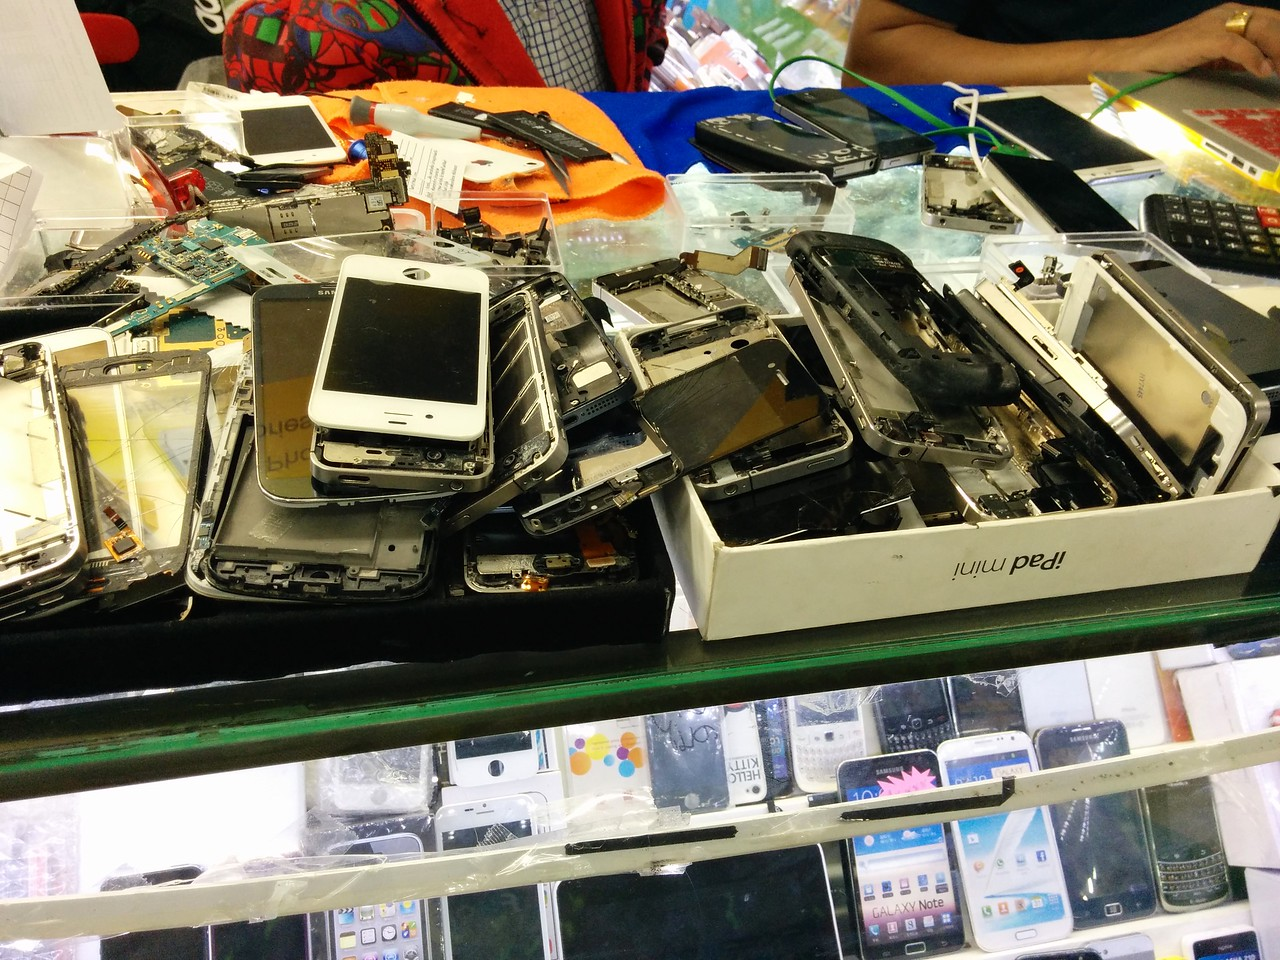 One of the cell phone repair stalls at MBK mall.